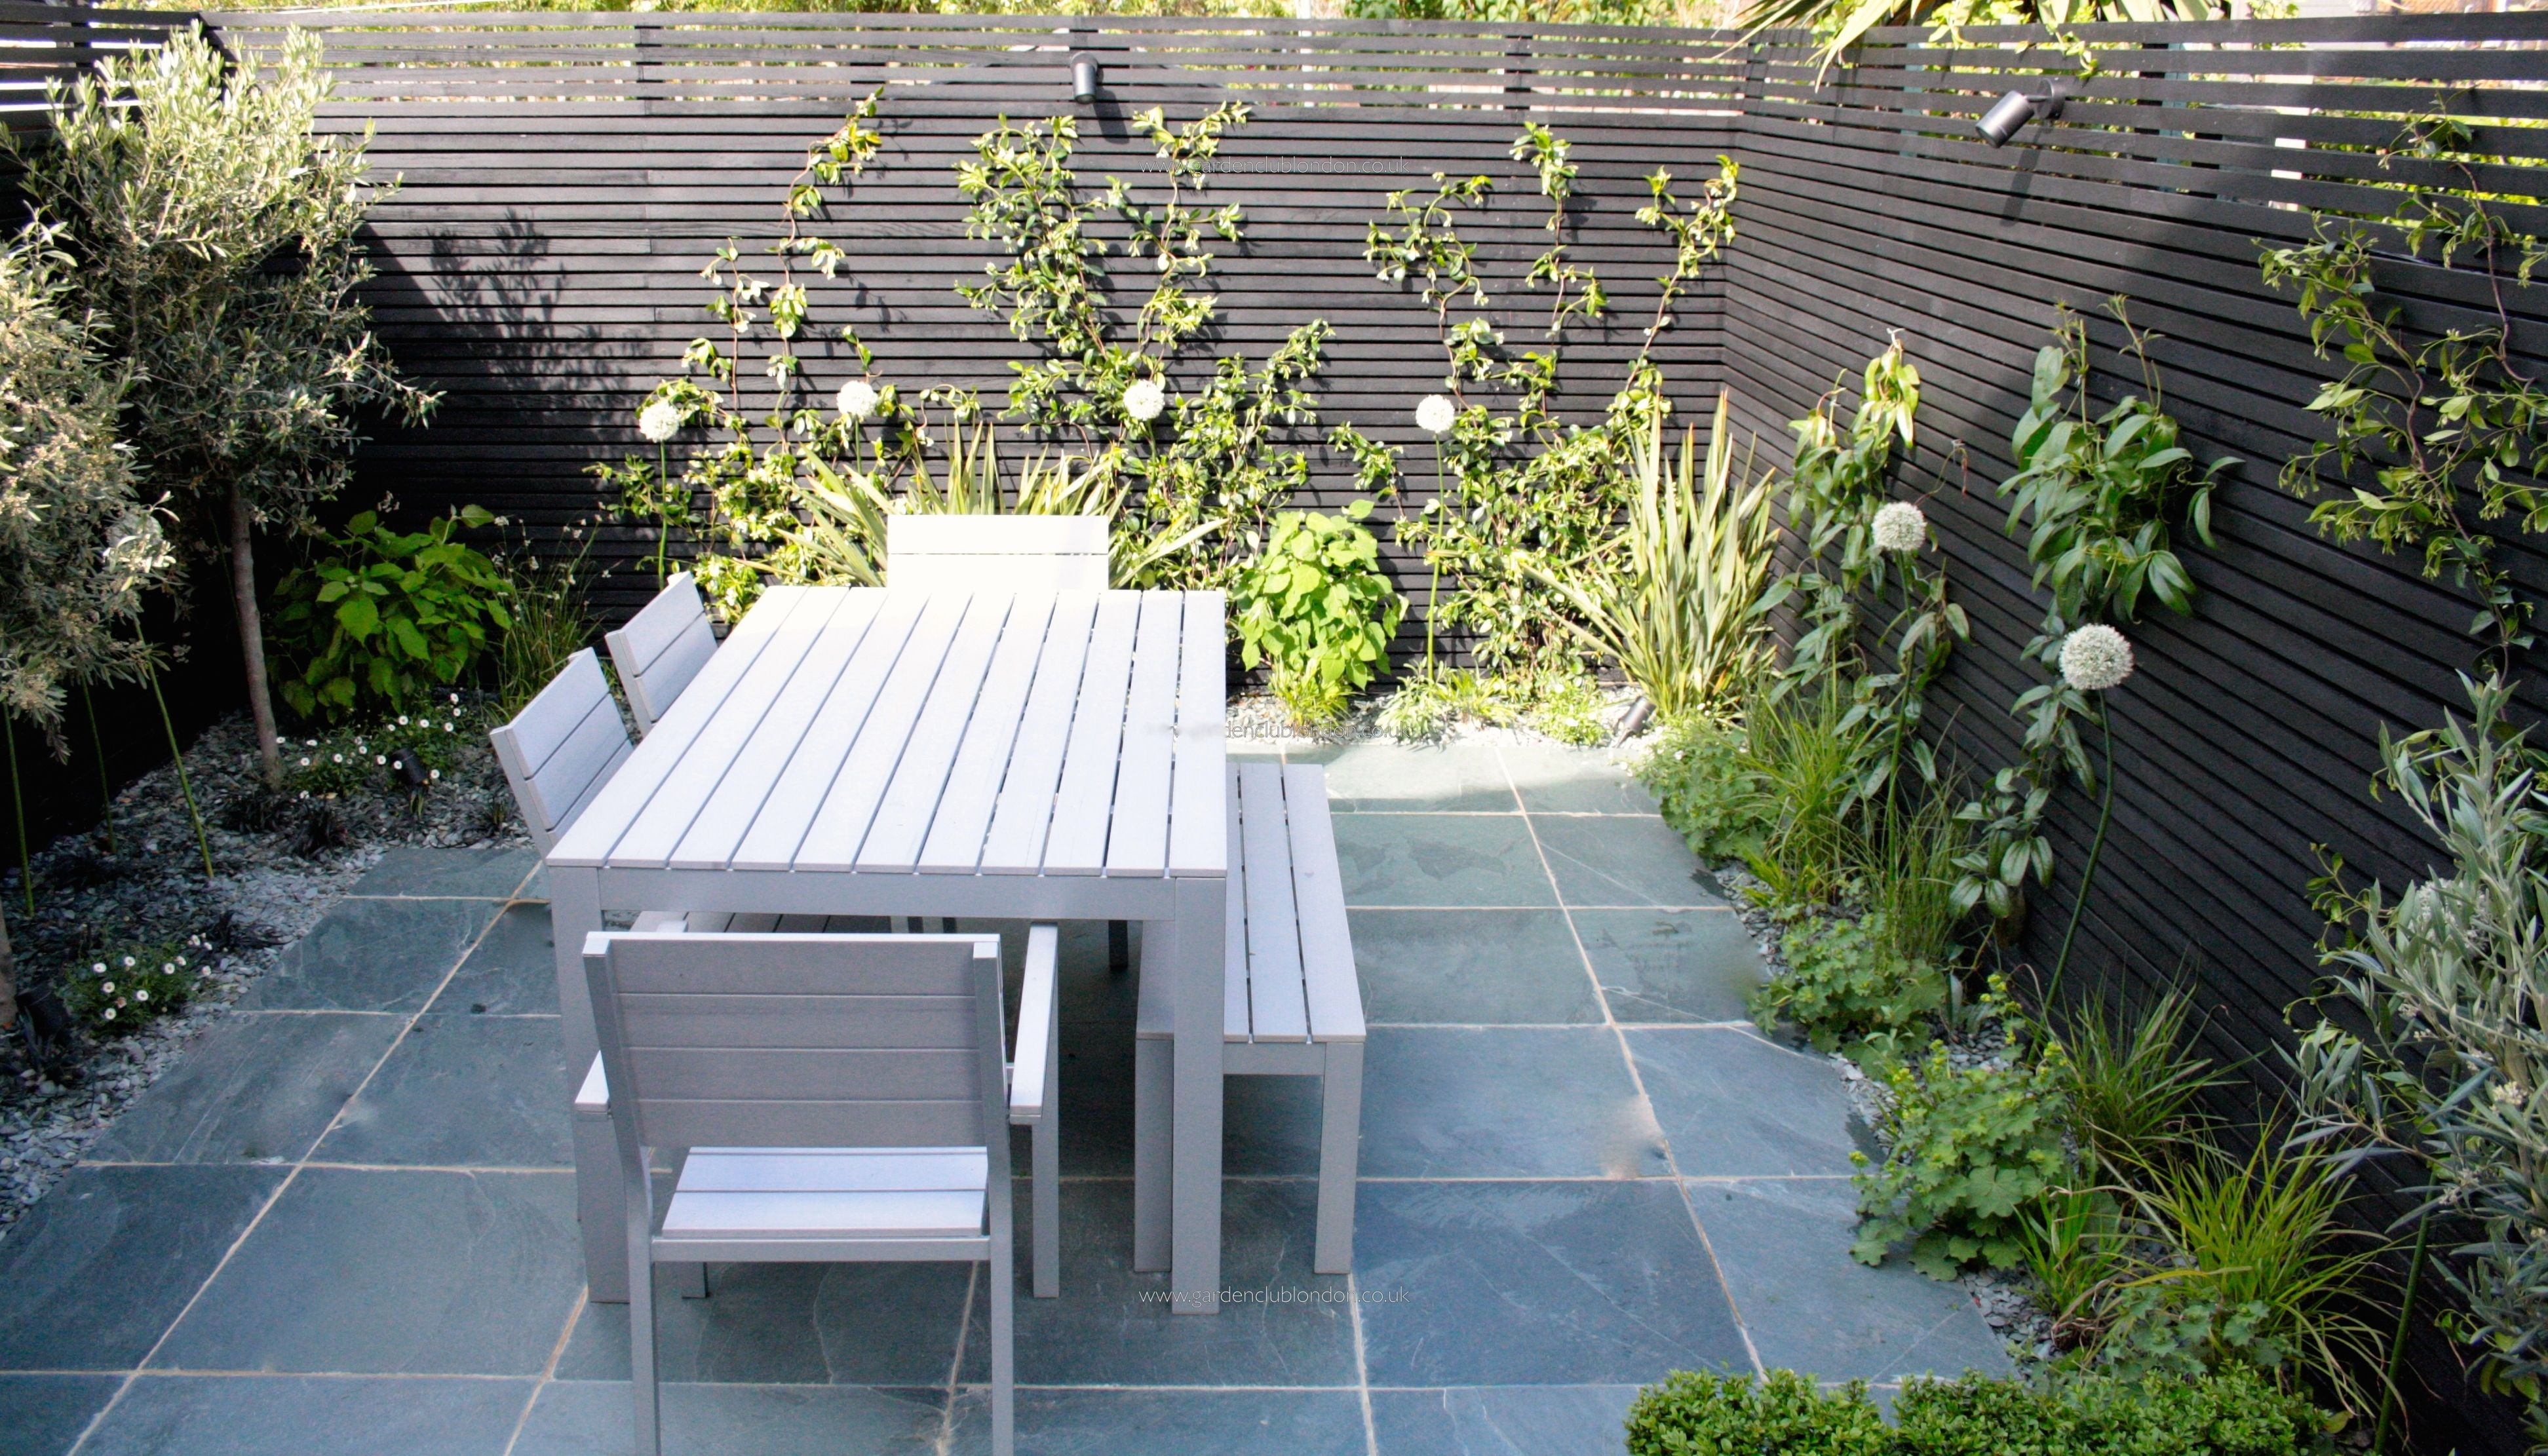 Small modern garden design for urban garden in London with